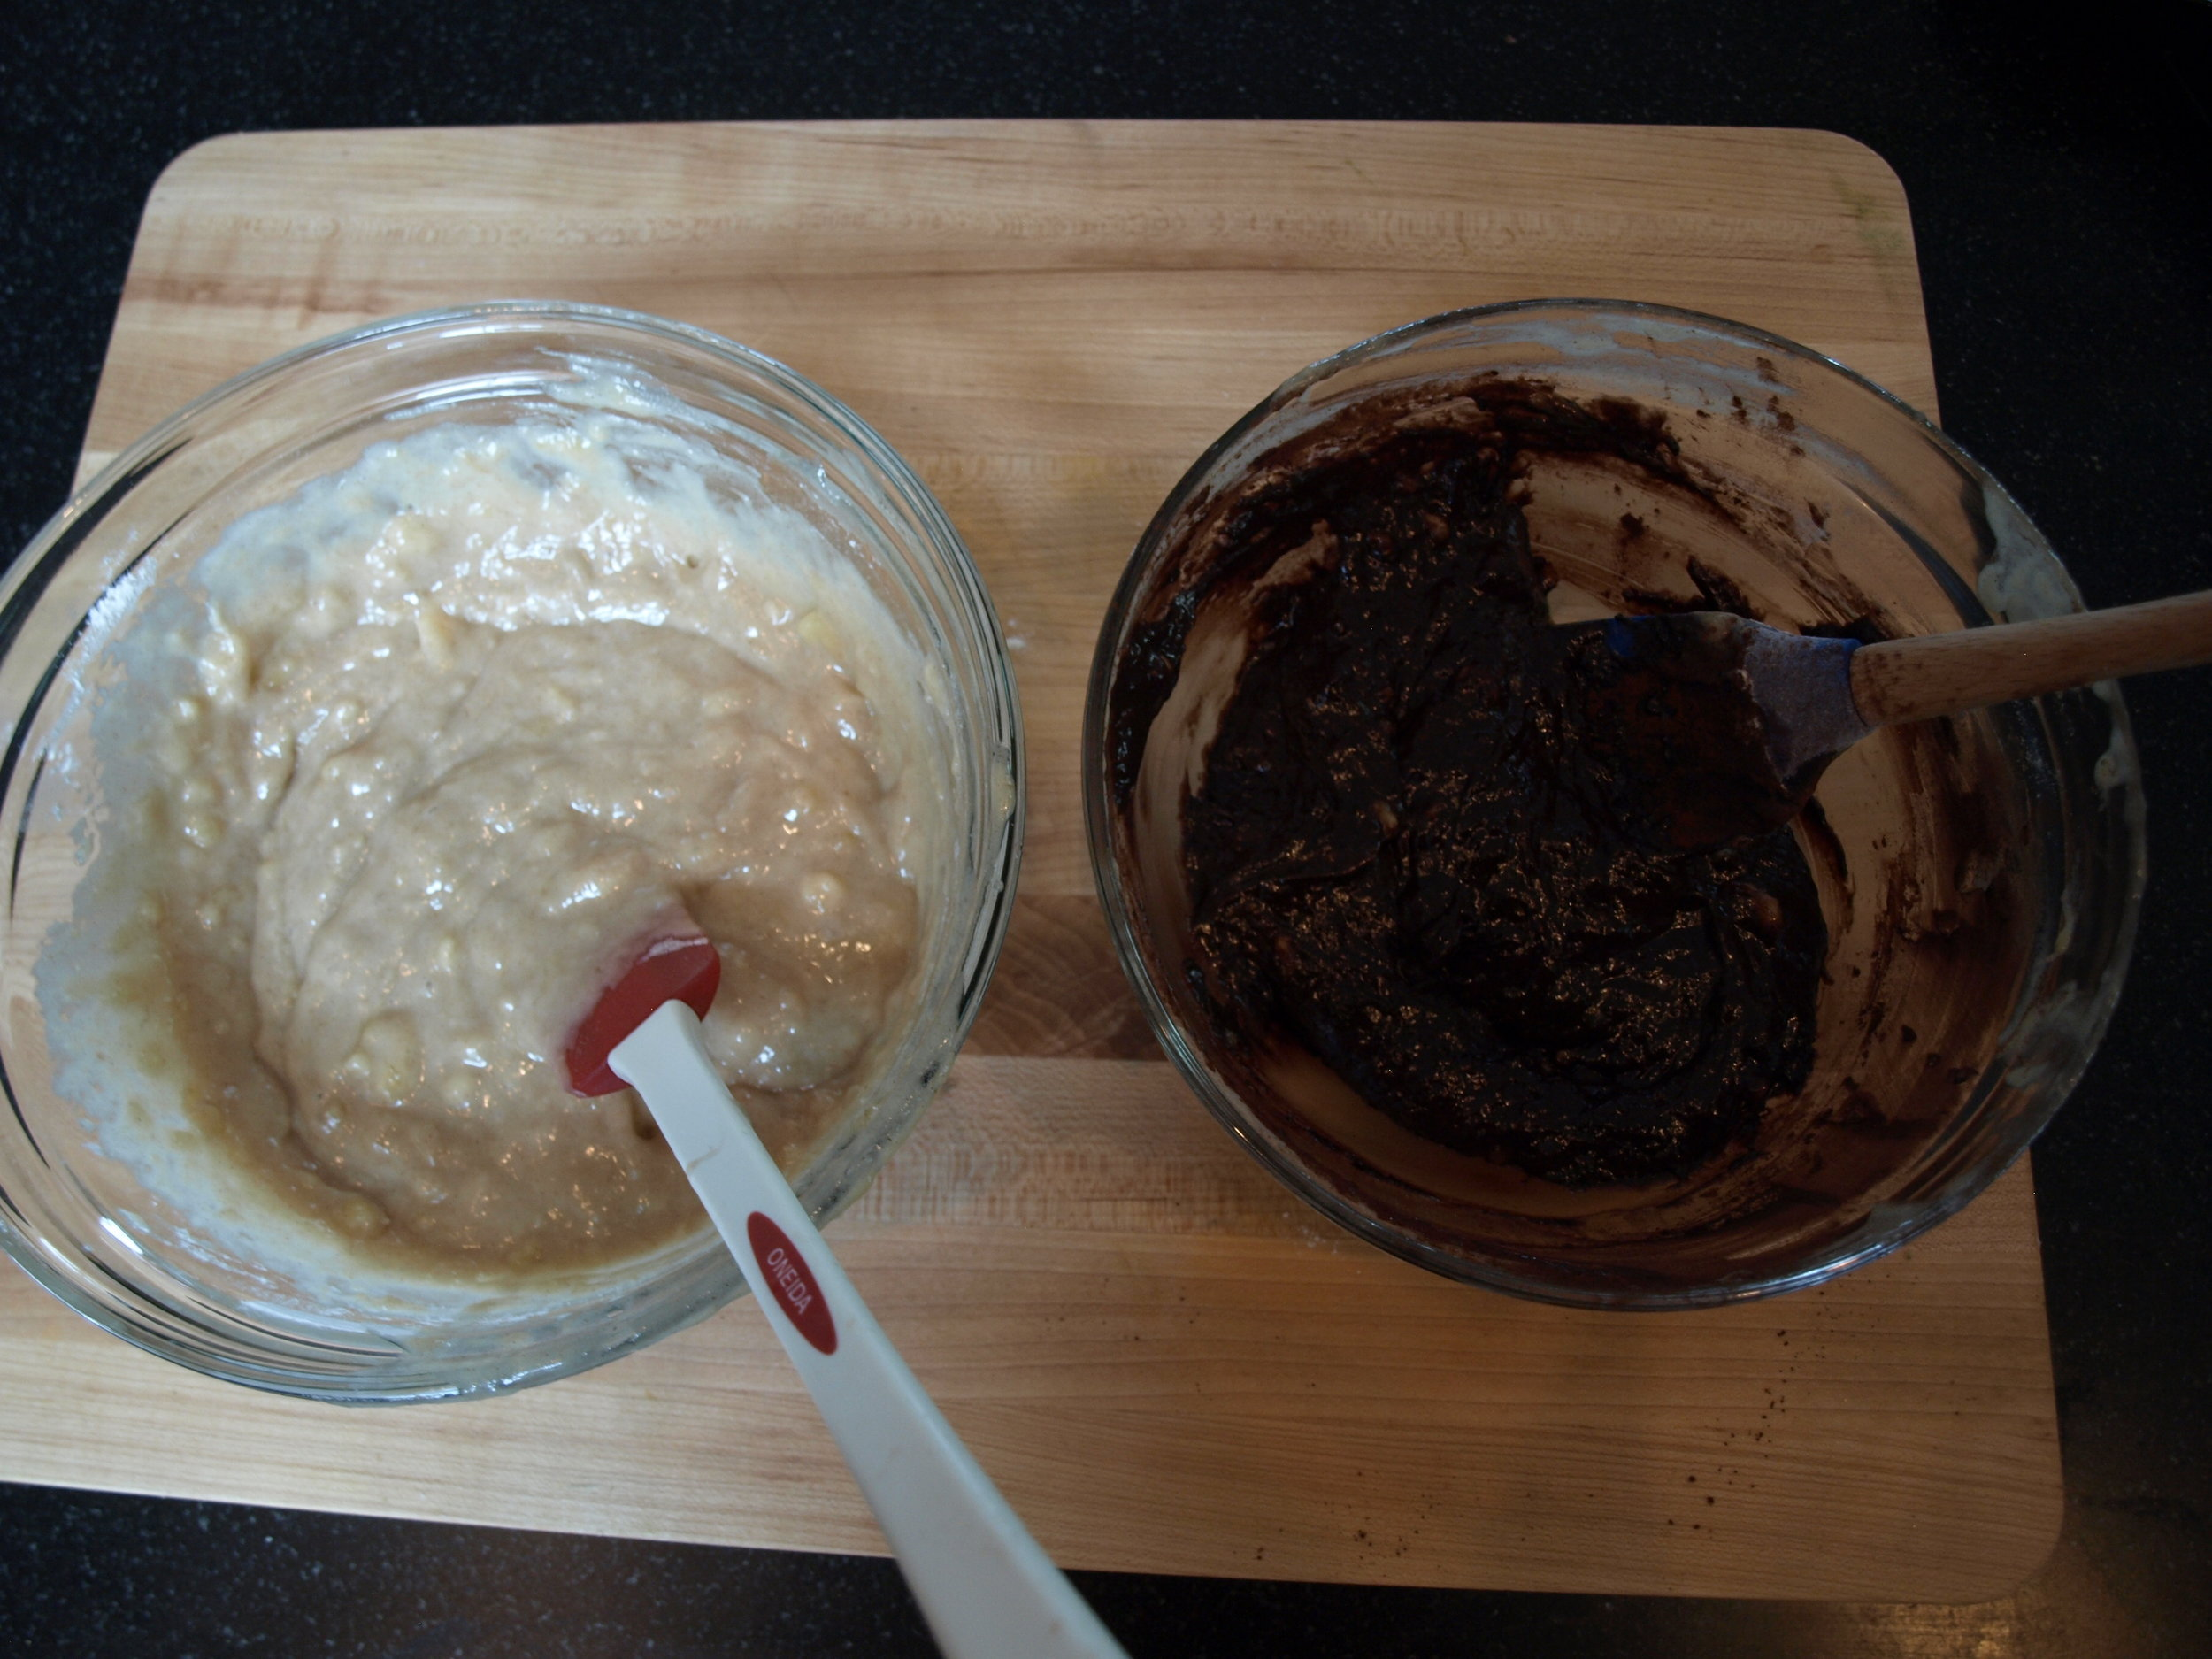 2/3 banana batter and 1/3 chocolate batter.